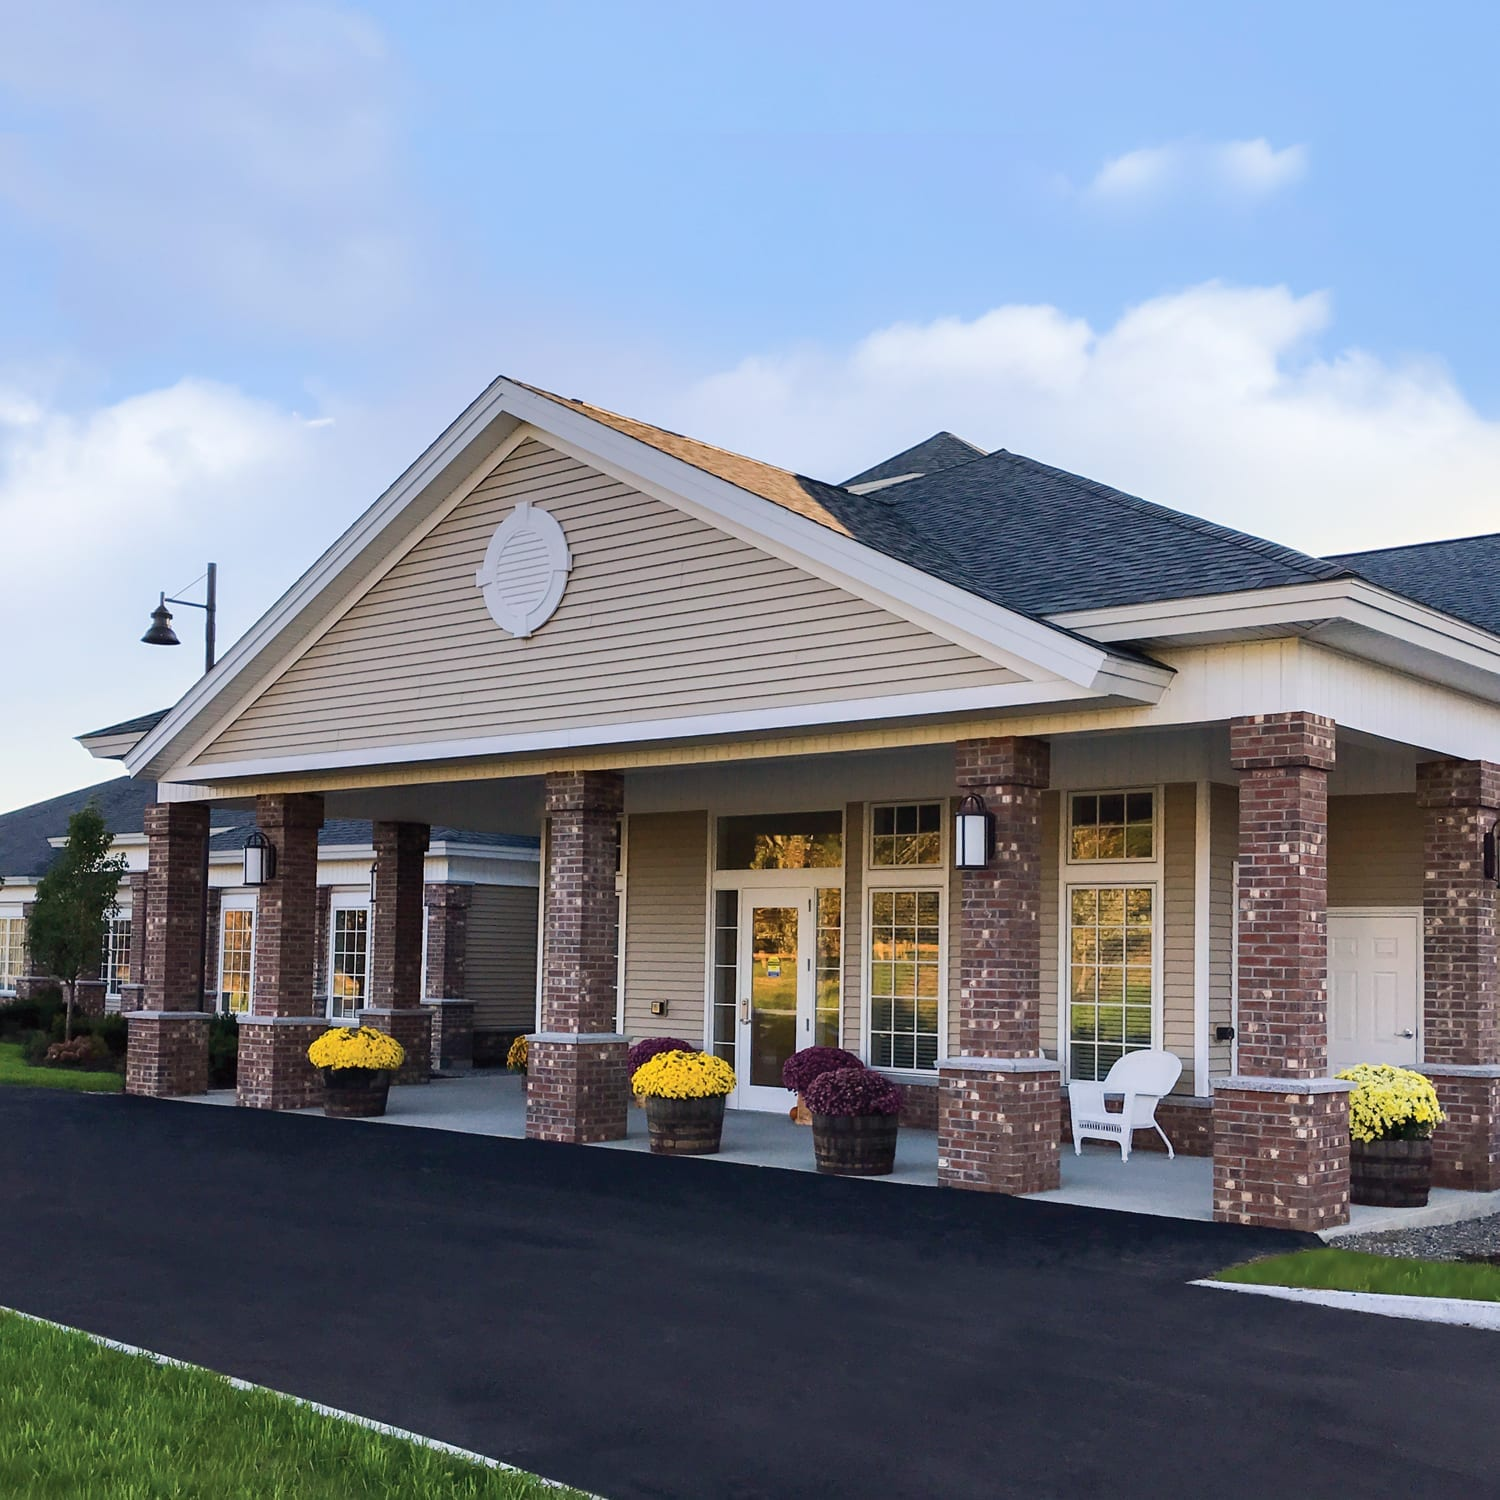 Woodlands Senior Living, Woodlands Senior Living